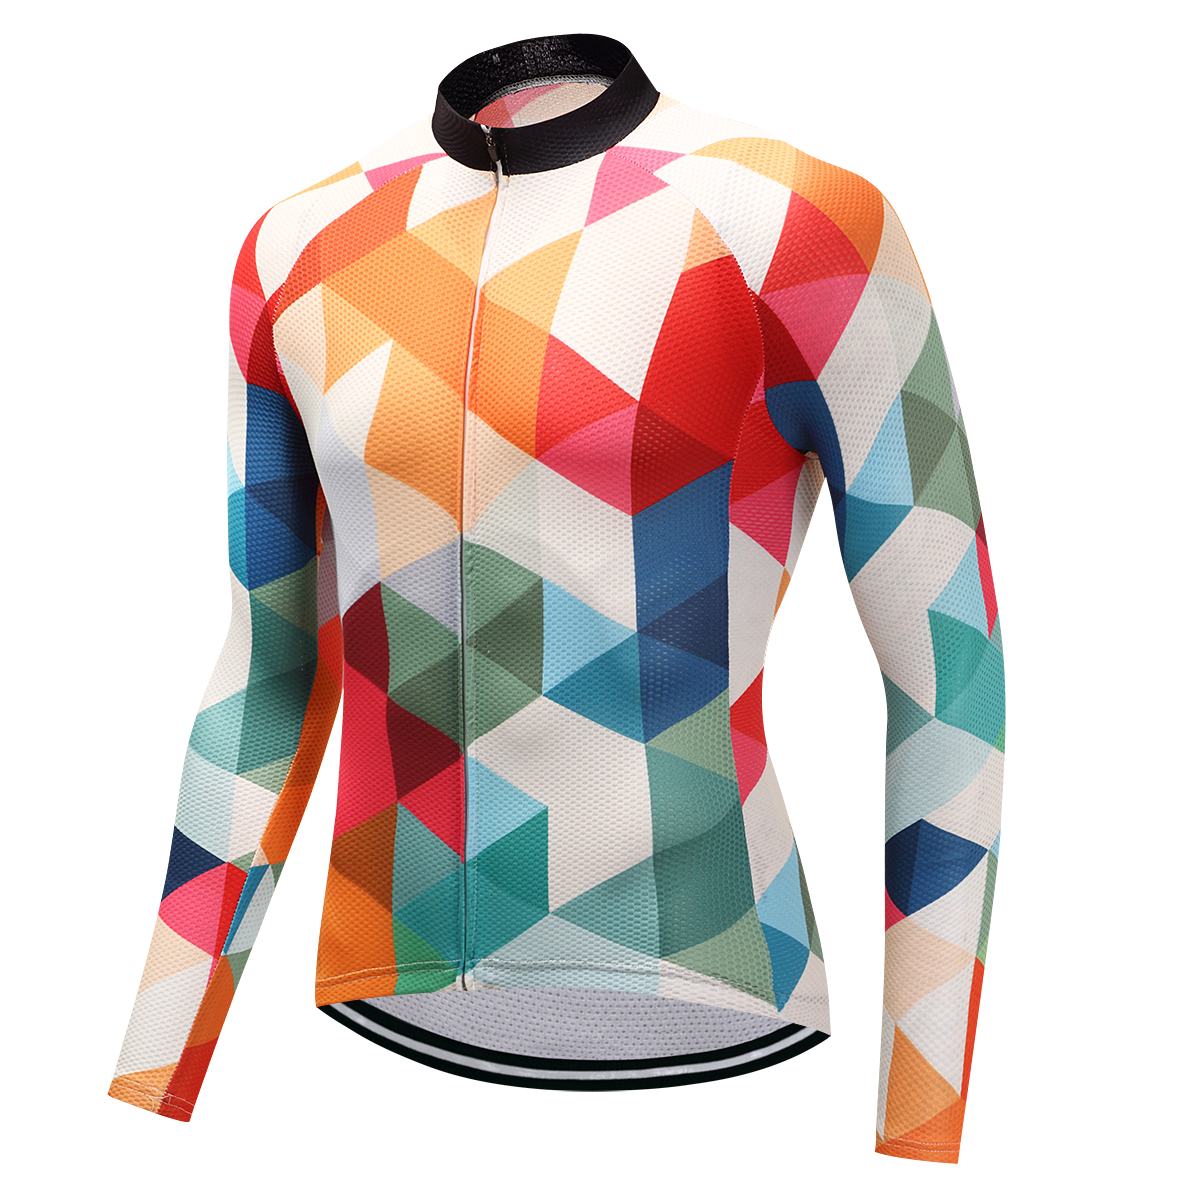 Fualrny Winter Long Sleeve Cycling Clothing Mountain Bicycle Wear Maillot Ropa Ciclismo Invierno Thermal Fleece Bike Jersey